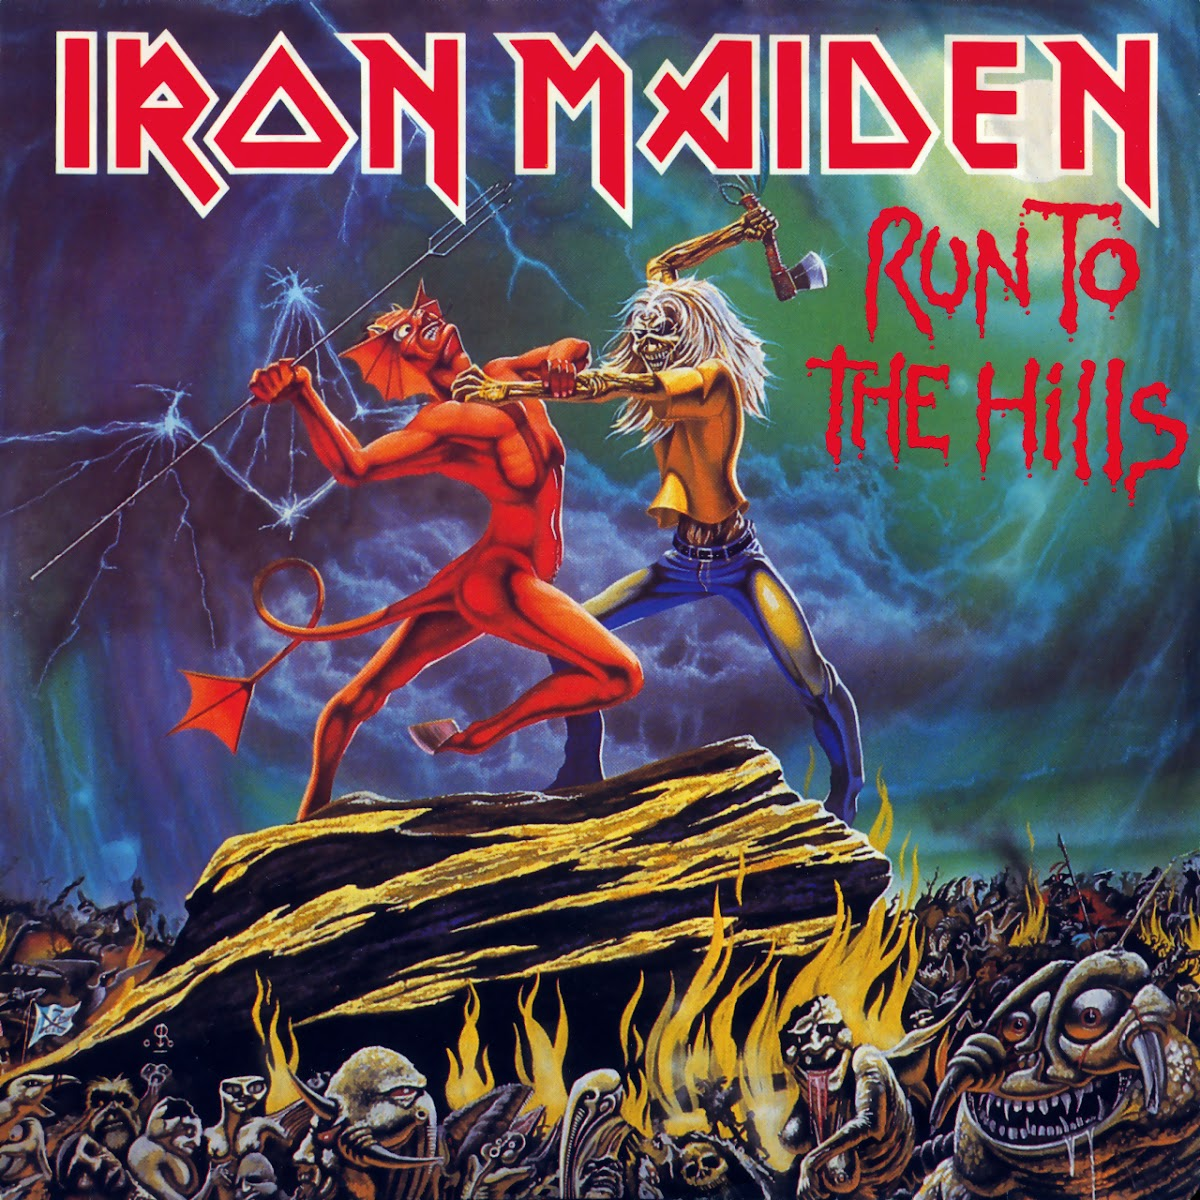 http://4.bp.blogspot.com/-G_0cX8XgsVk/T_CaBDpqi4I/AAAAAAAAC_k/Boe628kwNLU/s1200/single_iron_maiden_run_to_the_hills_ironmaidenwallpaper.com.jpg